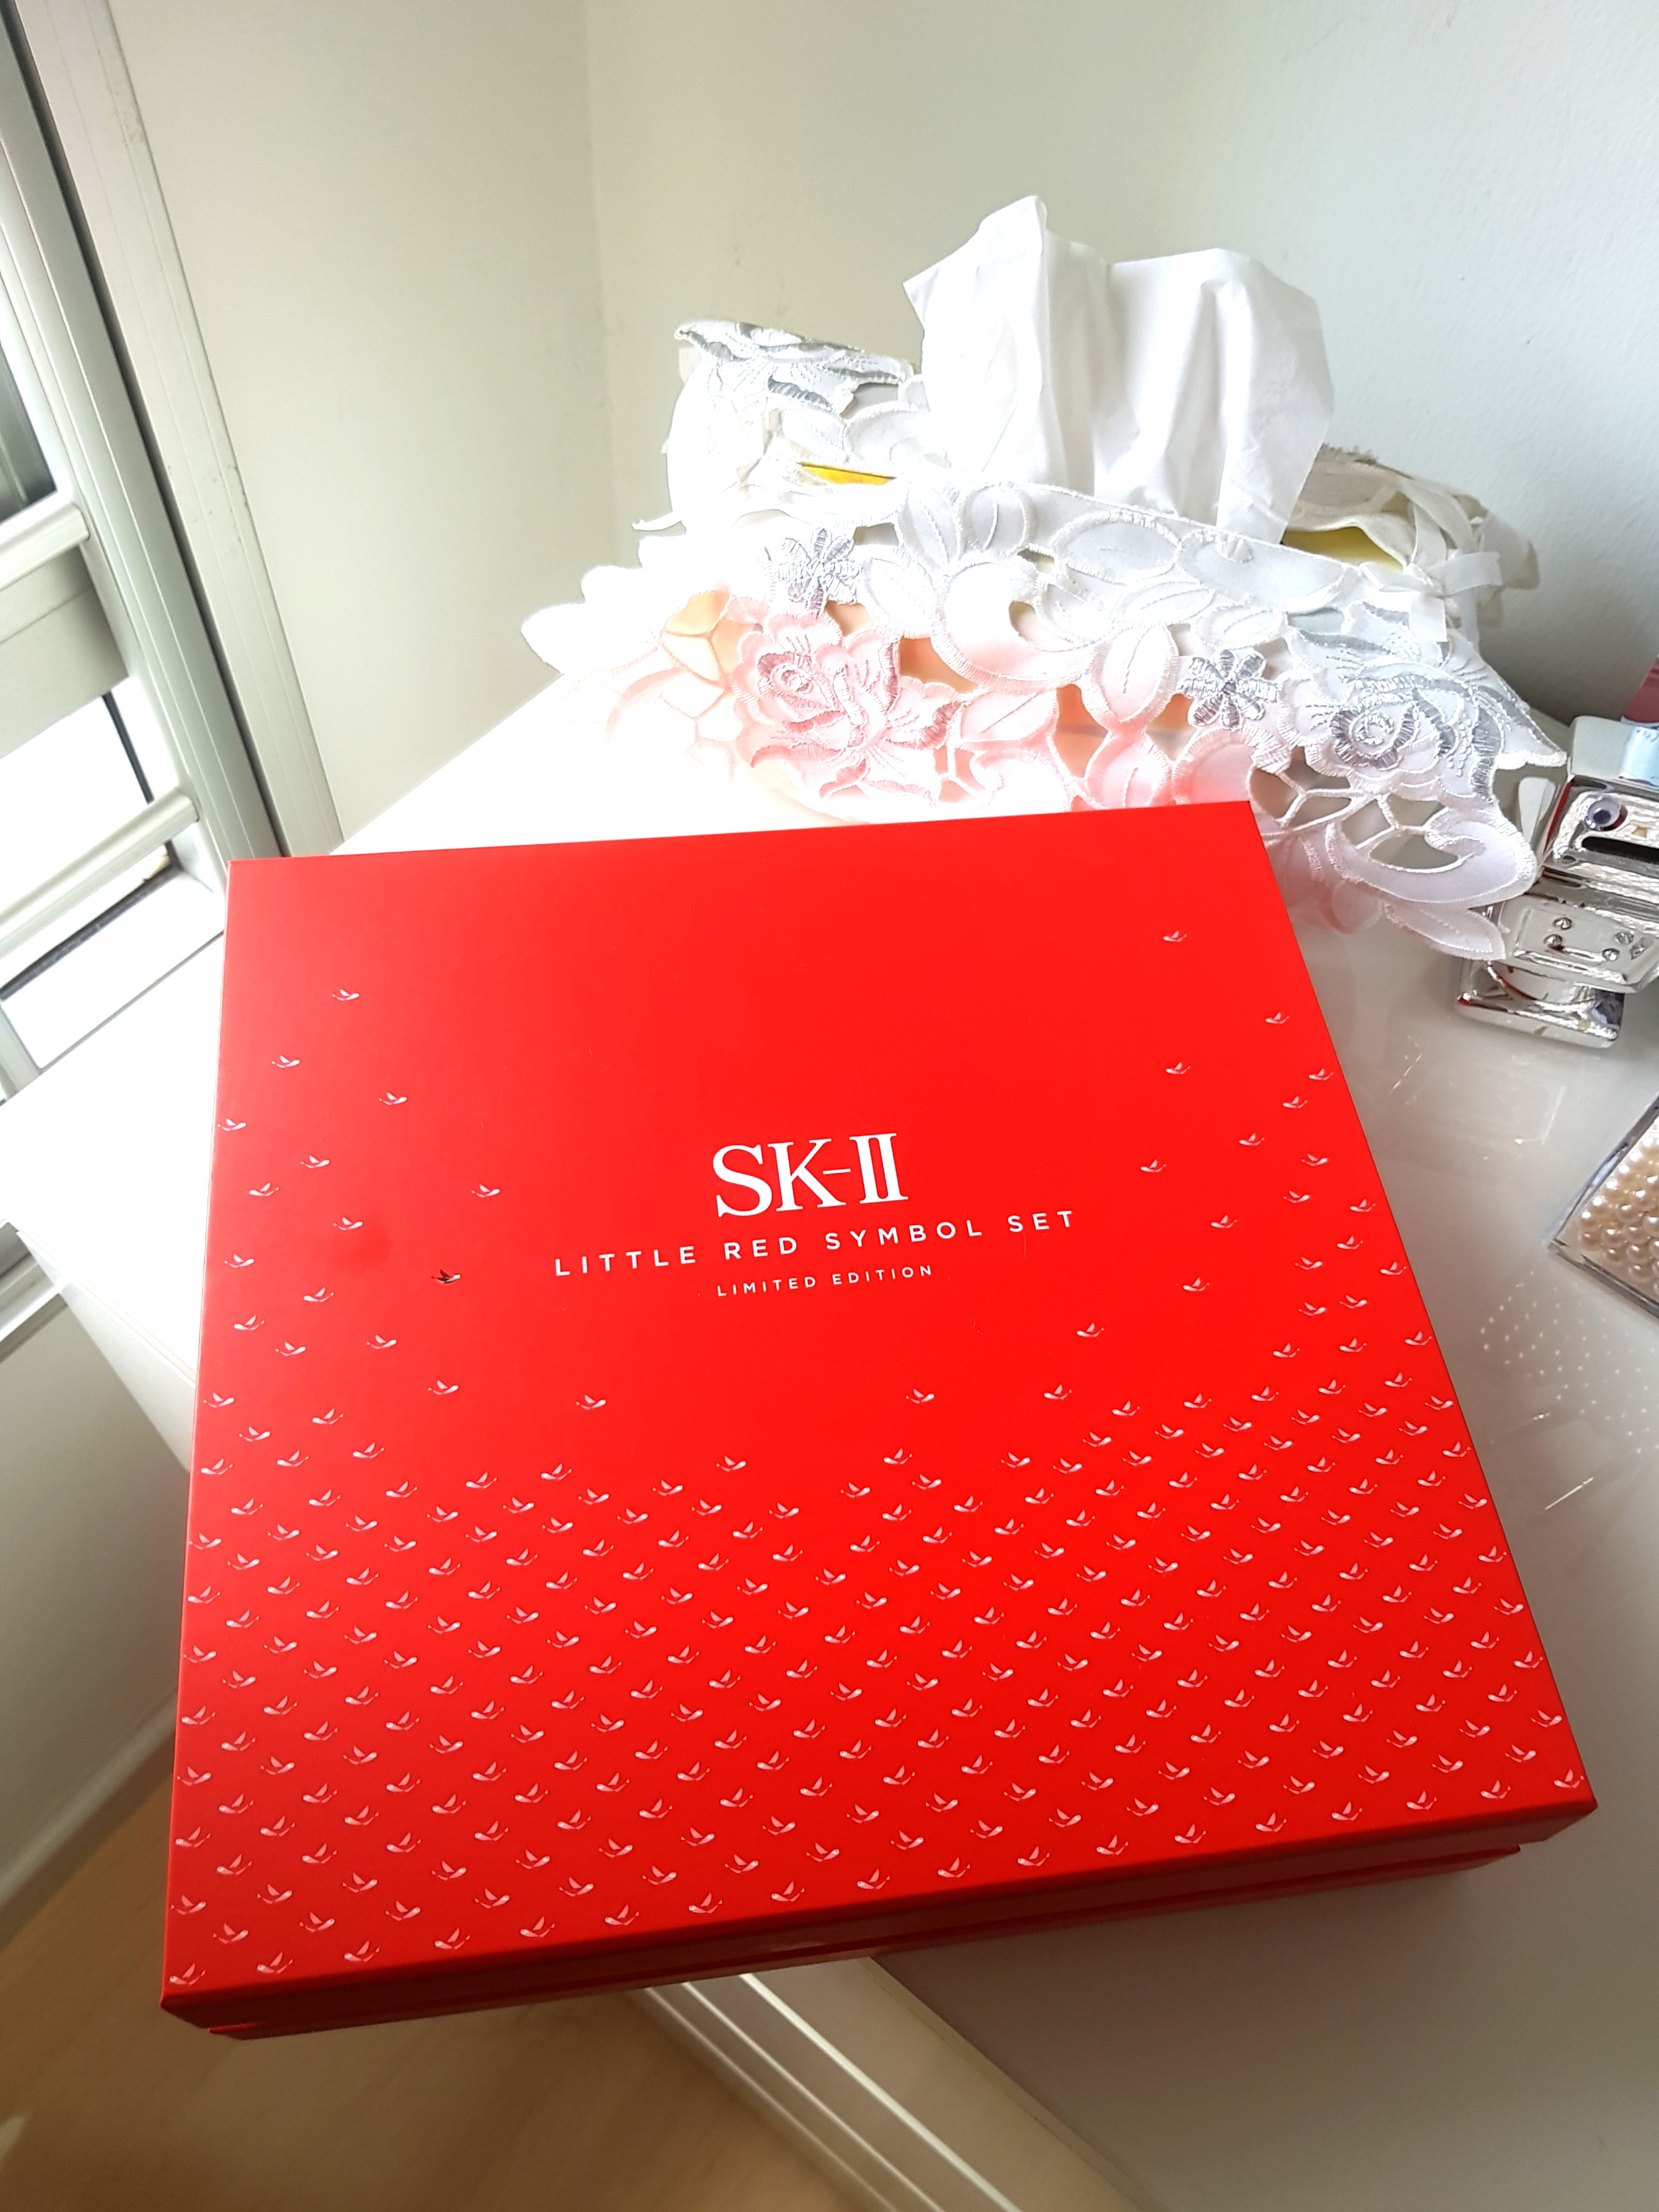 Sk Ii Facial Treatment Essence Little Red Symbol Set Limited 250ml Edition Health Beauty Bath Body On Carousell